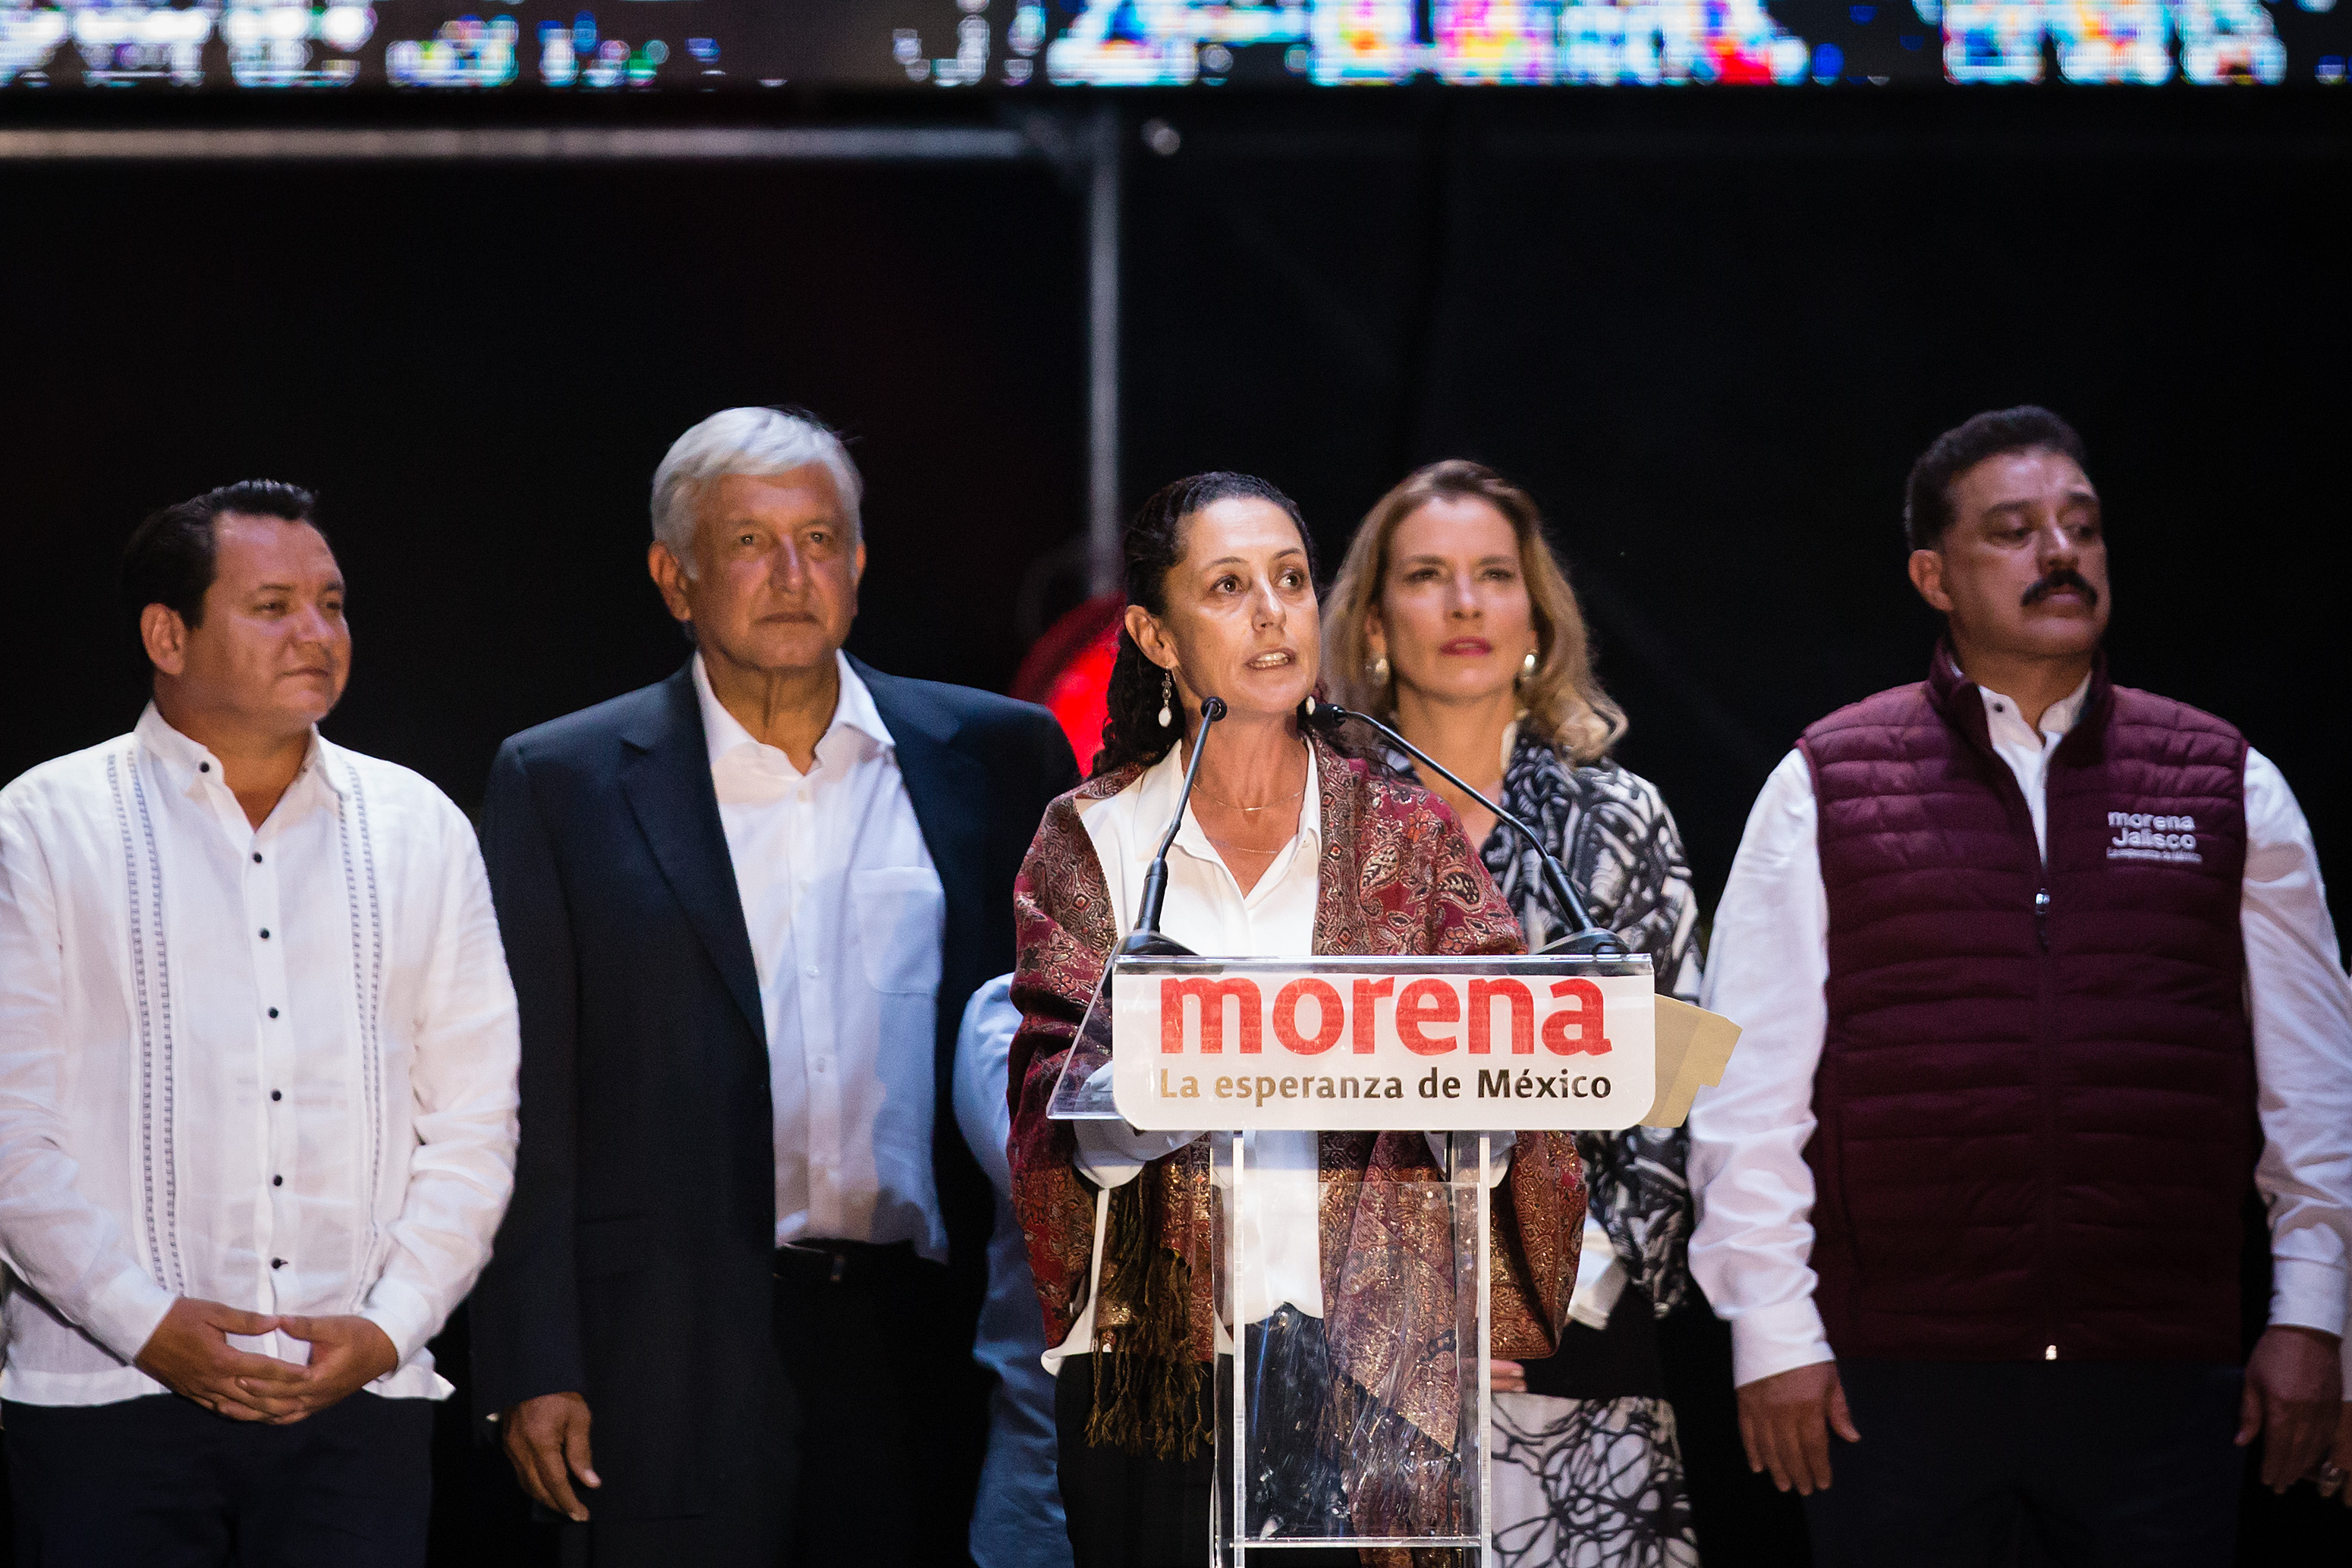 5 Things to Know About Claudia Sheinbaum, the First Woman Elected Mayor in Mexico City